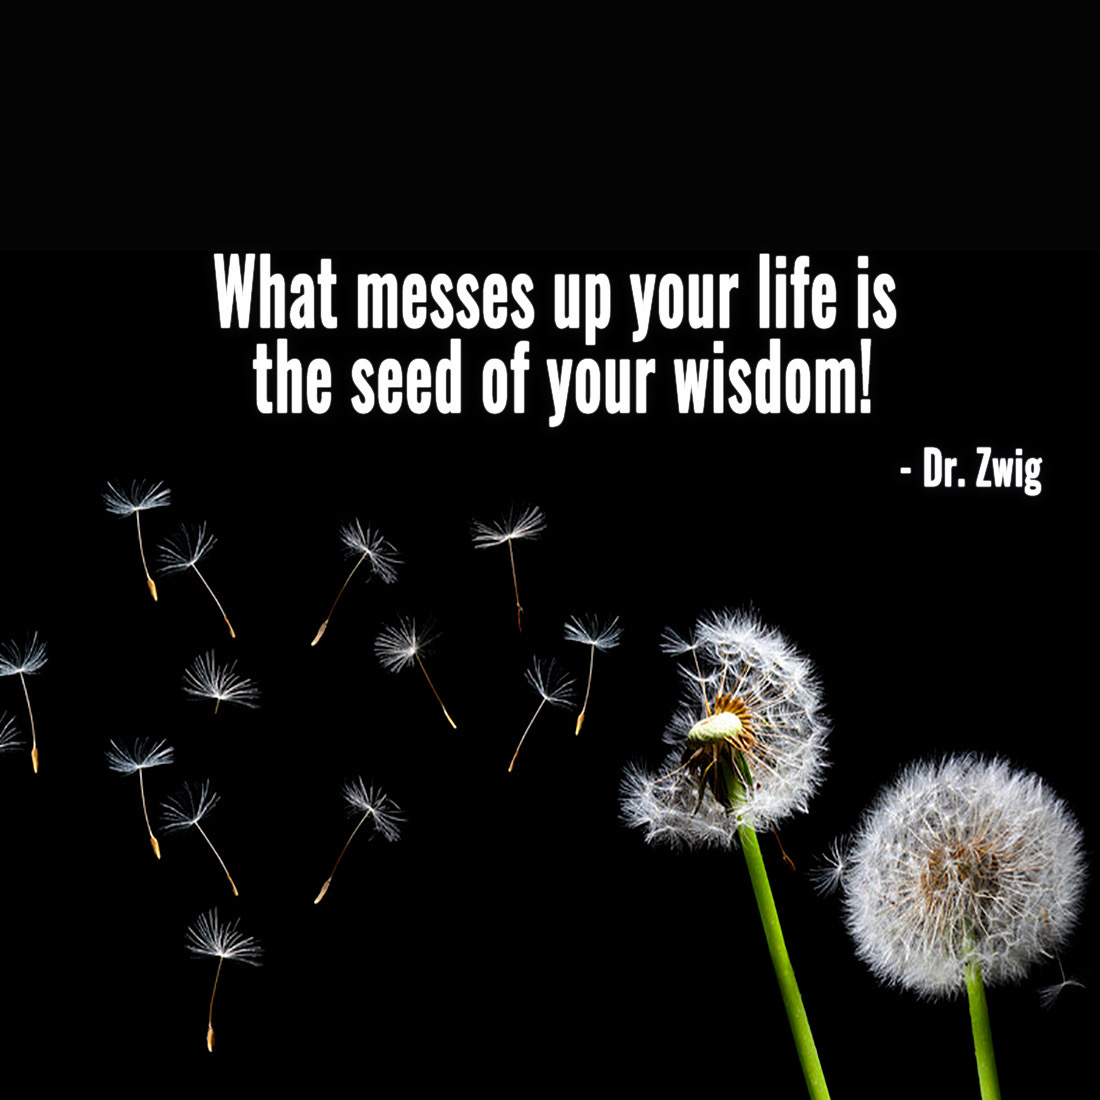 What messes up your life is the seed of your wisdom